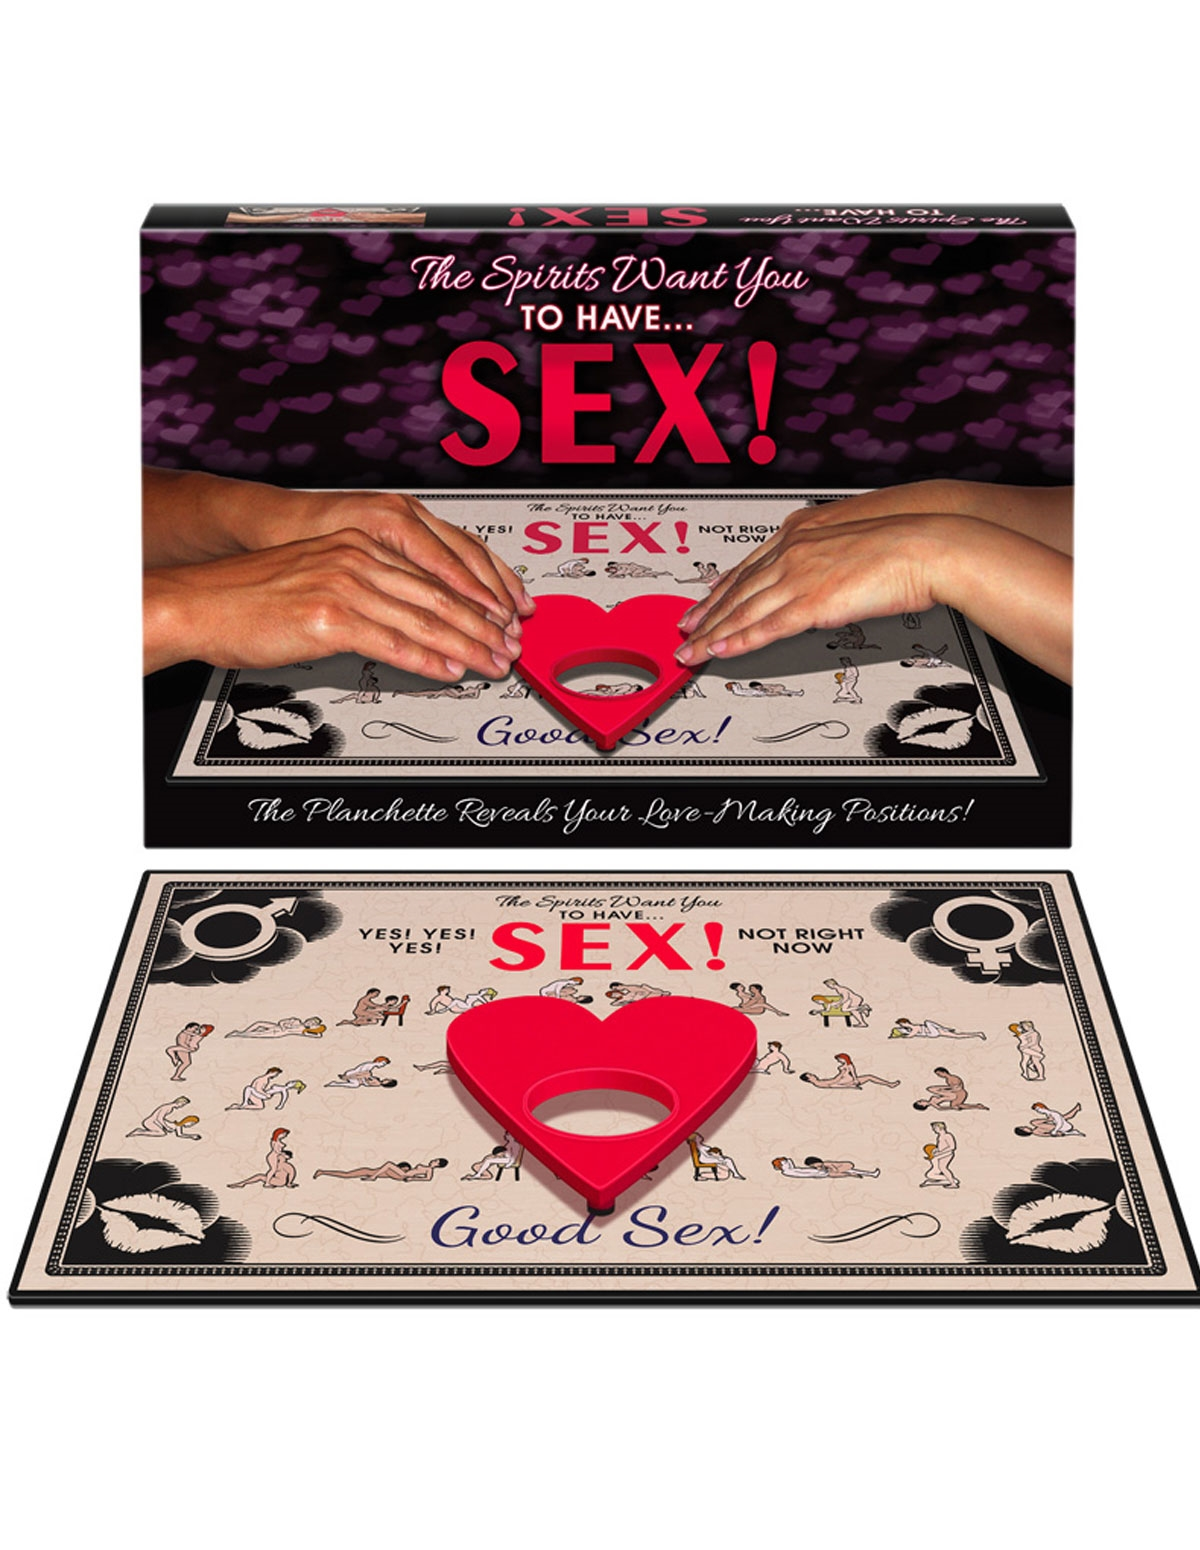 Using board games for sex